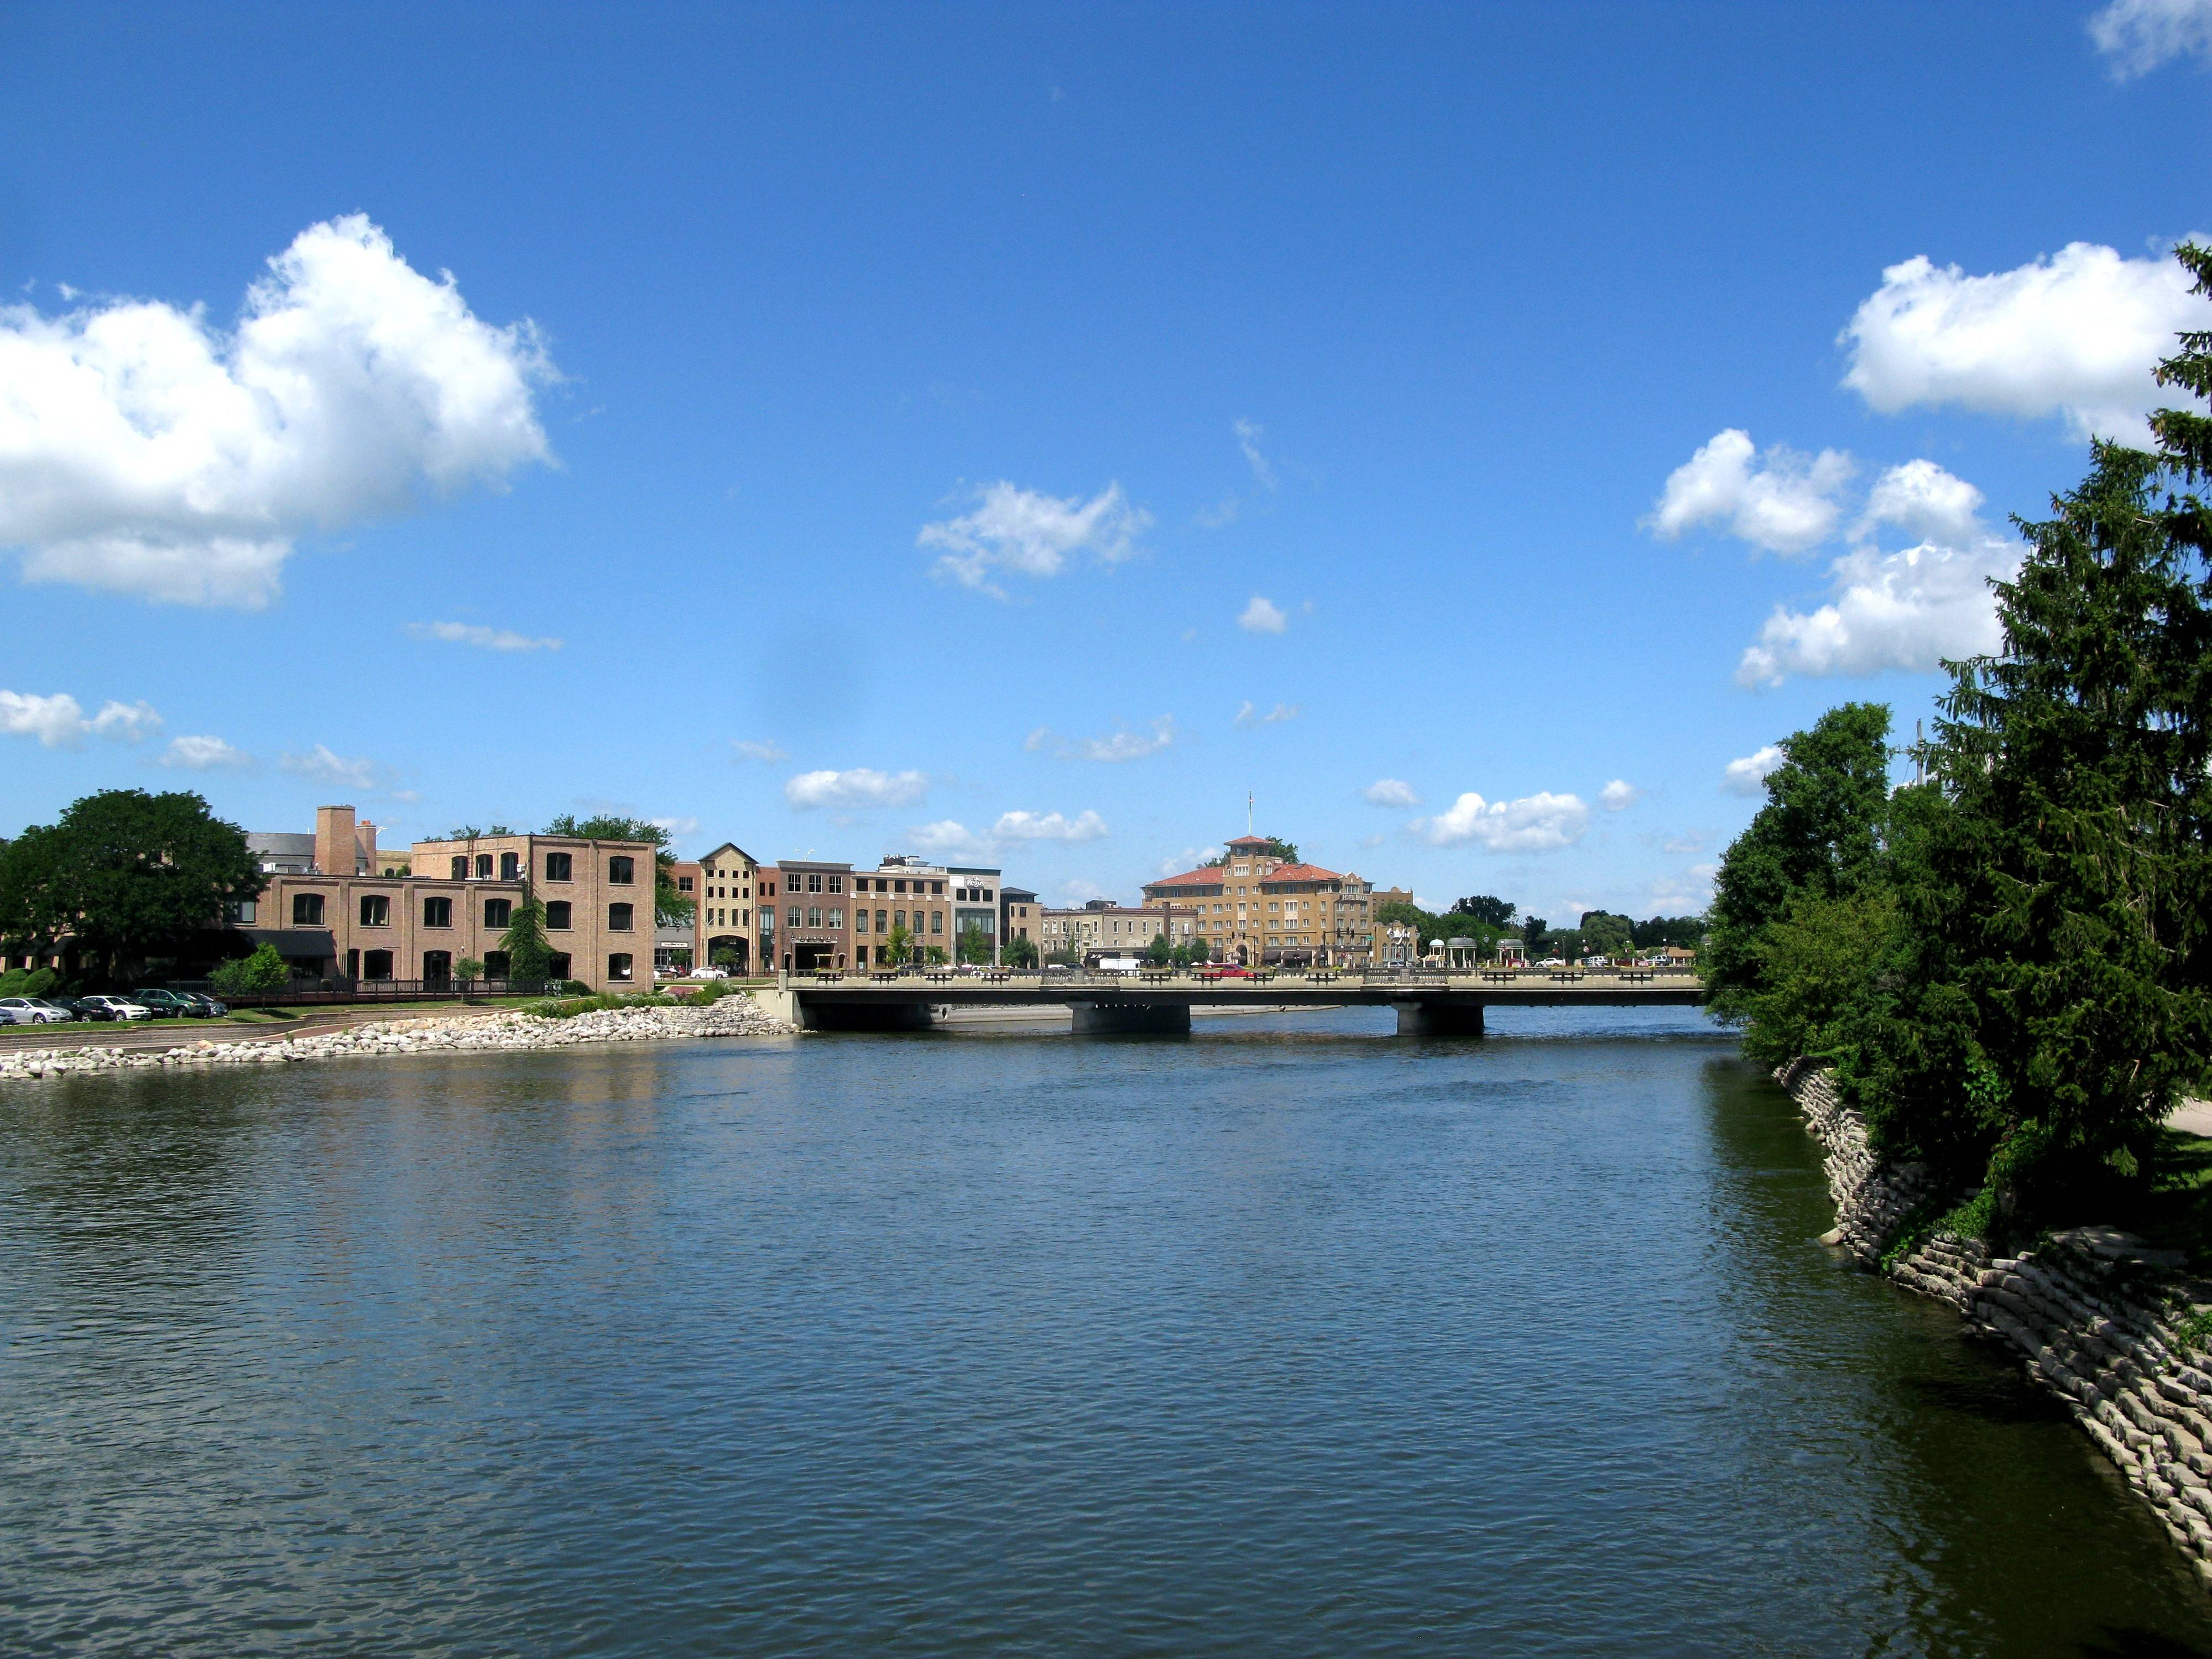 St. Charles has had some iconic success along its portion of the Fox River. The Hotel Baker and part of a major downtown development called First Street are the major, non-festival river draws for the business area.